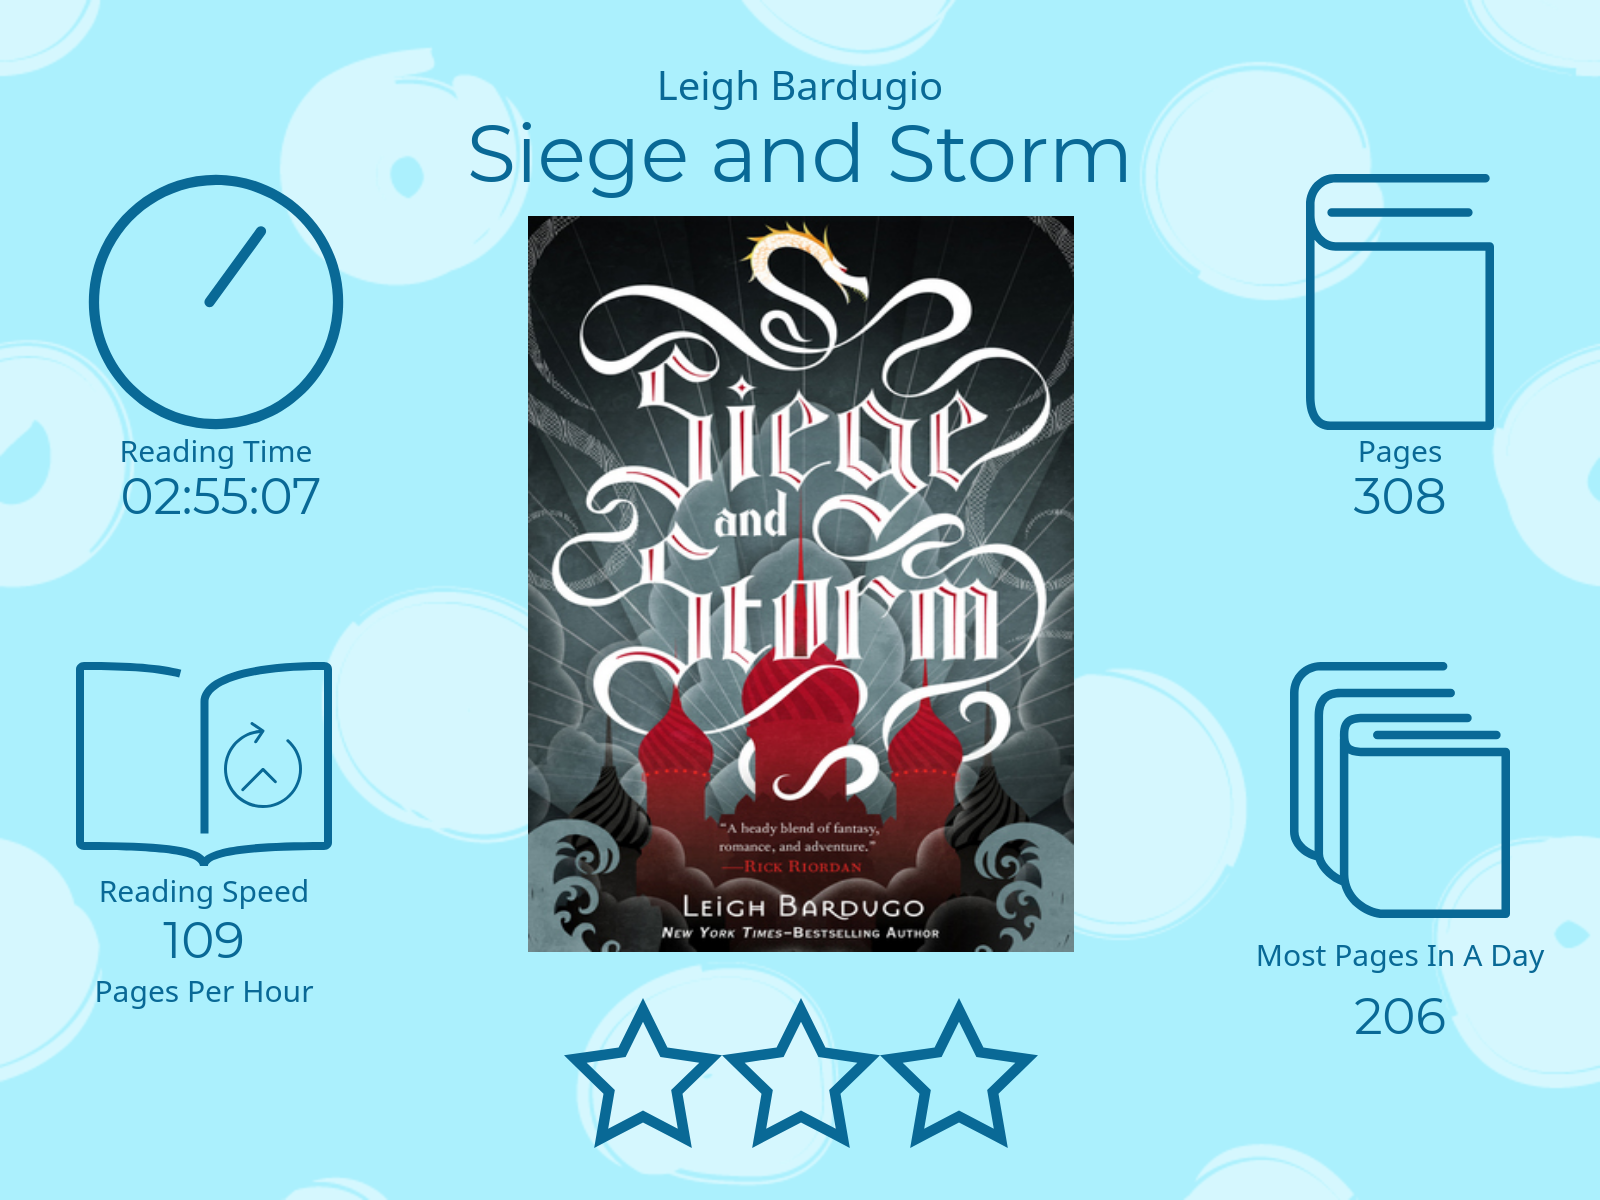 Siege and Storm by Leigh Bardugo 3 stars Time read: 2 hours, 55 minutes and 7 seconds Pages read: 308 109 pages per hour Most pages read in a day: 206